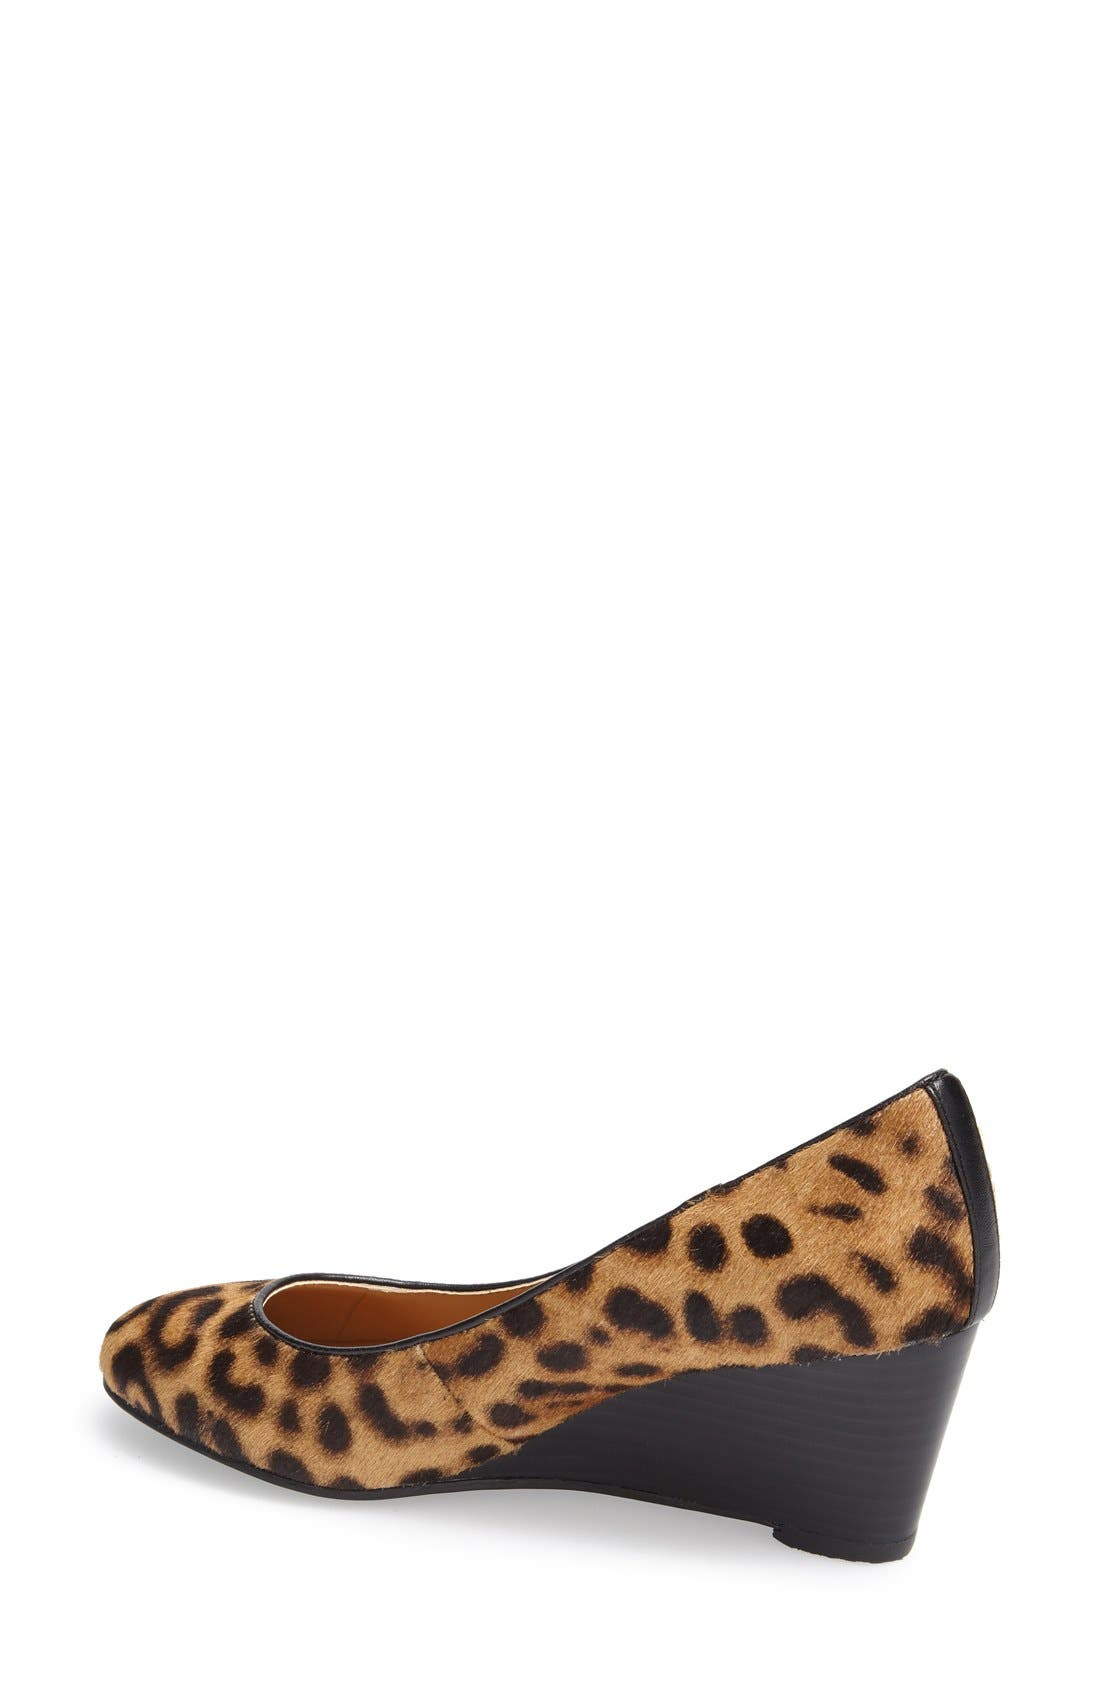 Alternate Image 2  - Nine West 'Ispy' Wedge Pump (Women)